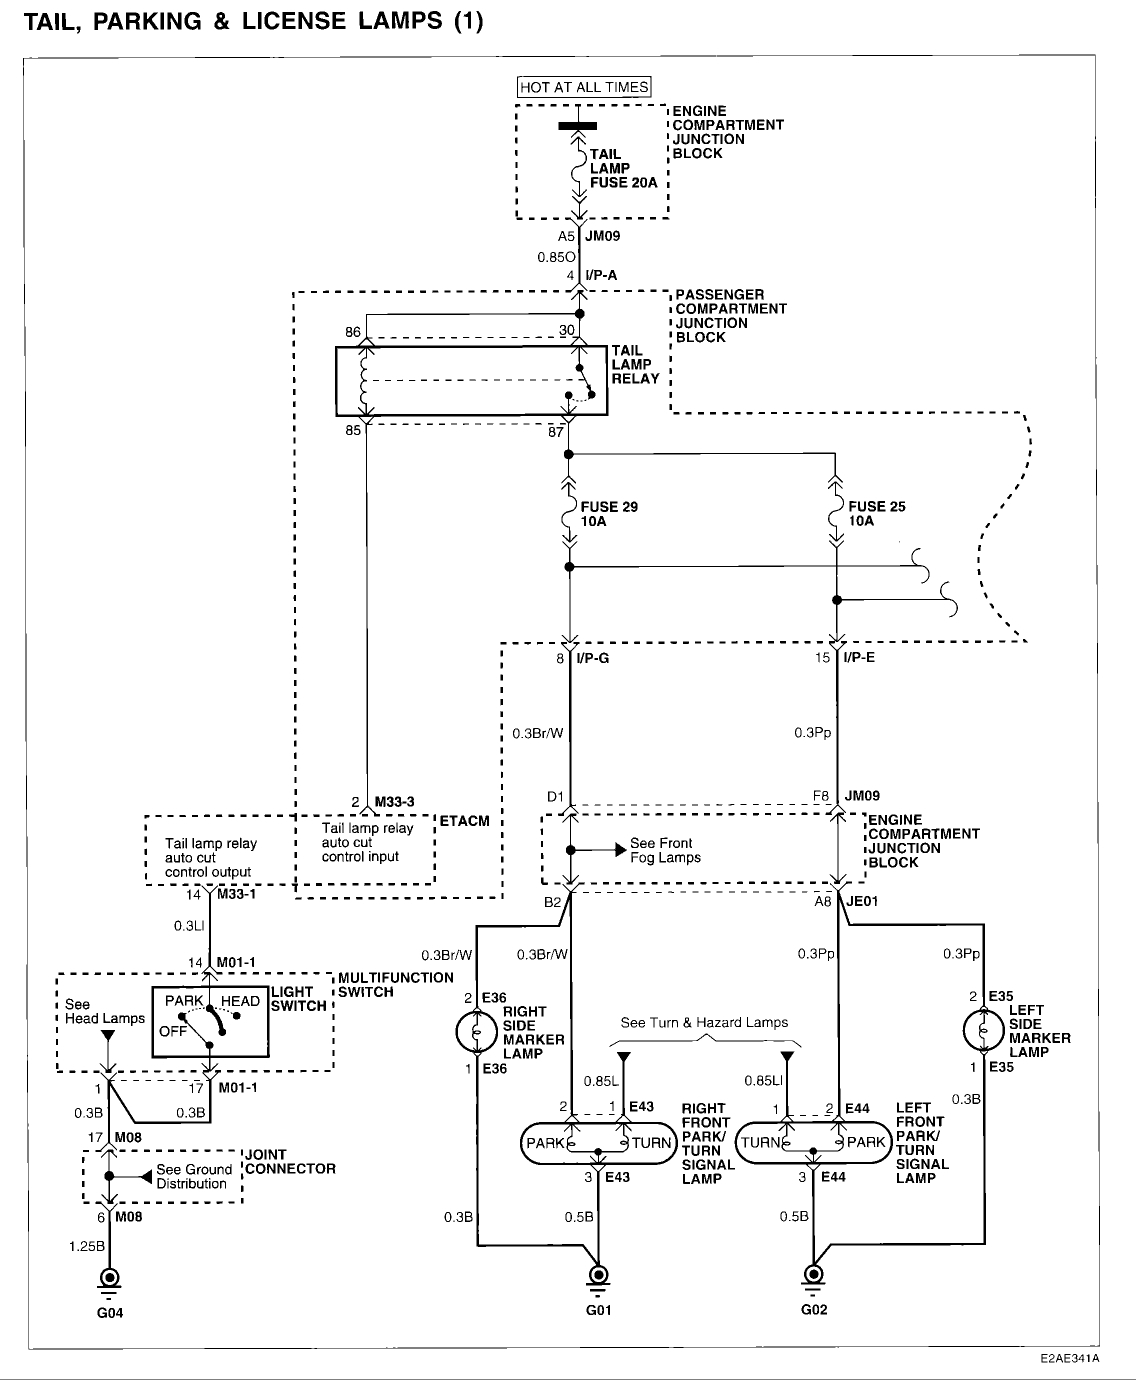 Diagram  2013 Hyundai Elantra Wiring Diagram Full Version Hd Quality Wiring Diagram